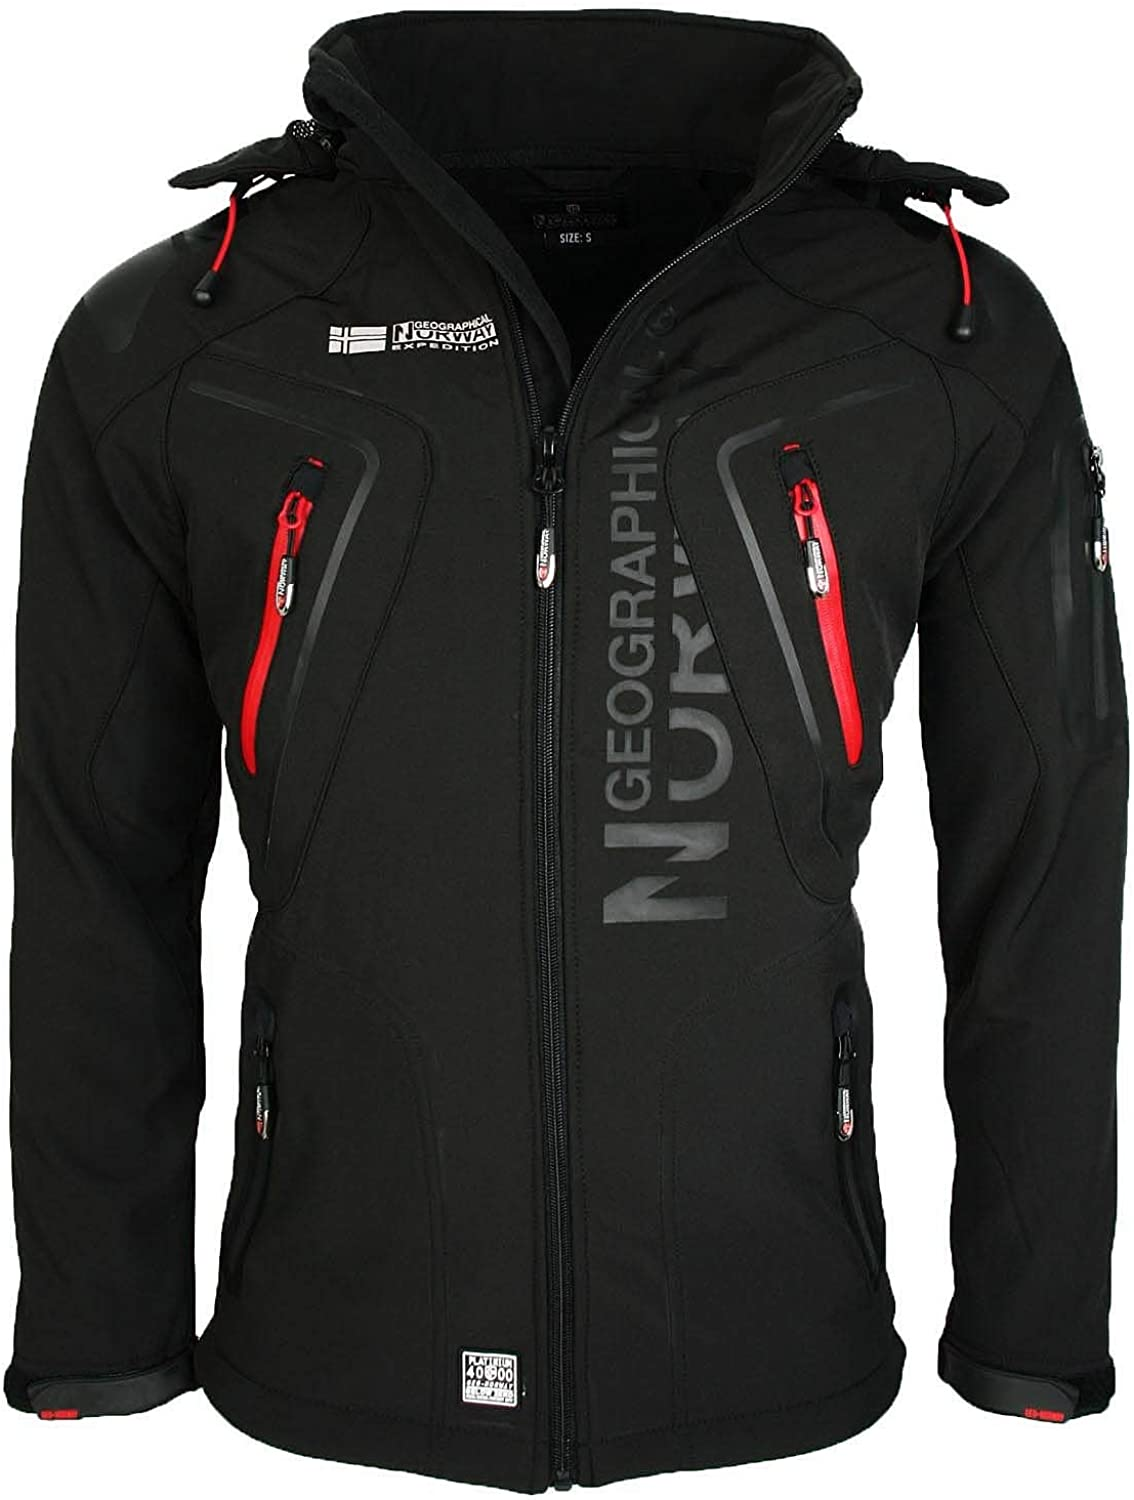 Geographical Norway Tambour Chaqueta Softshell Hombre - Negro, M